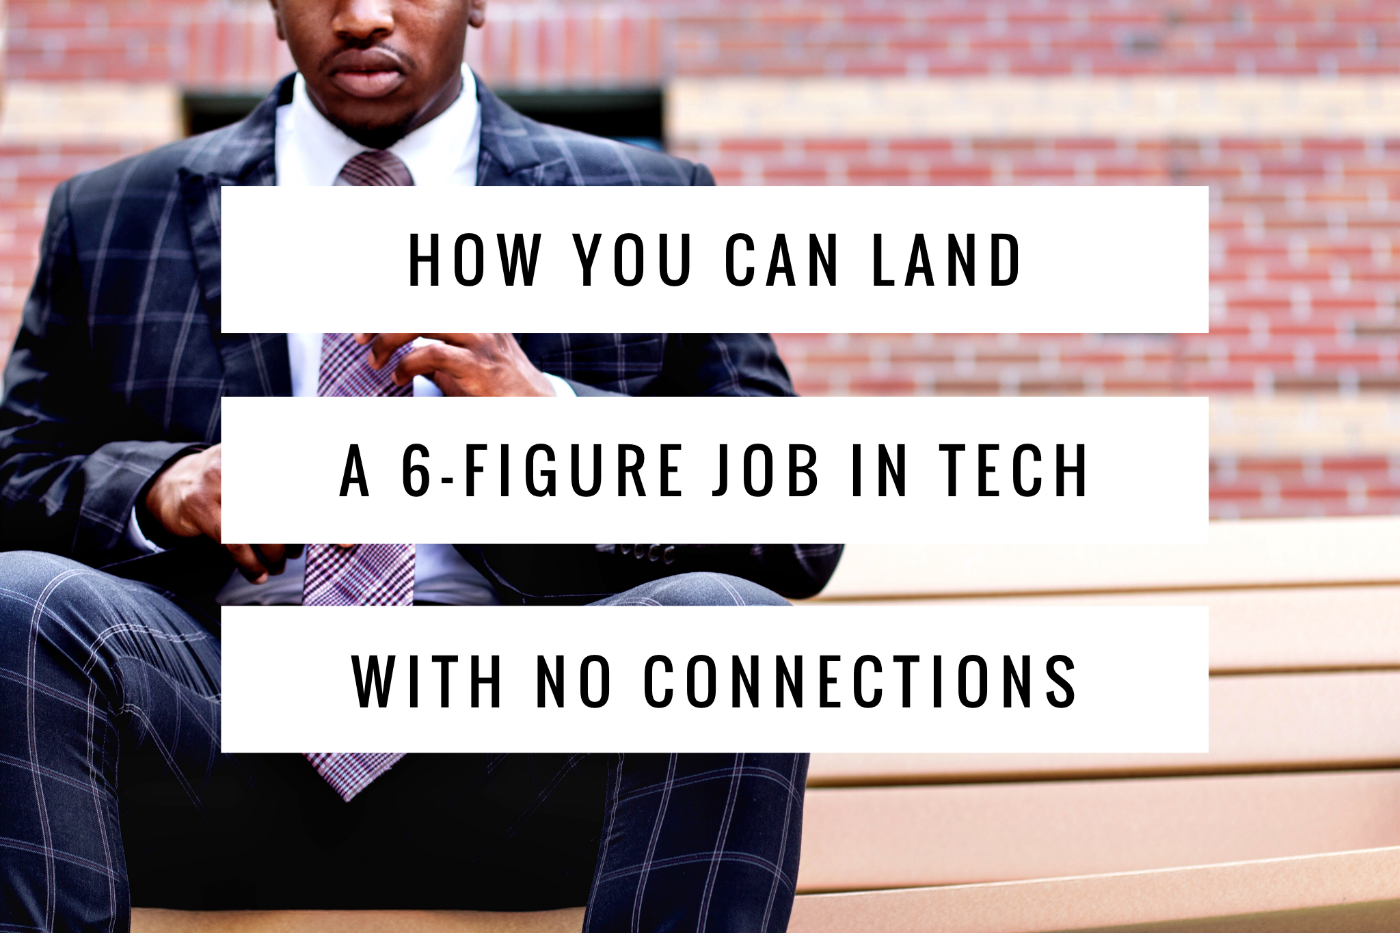 how you can land a 6 figure job in tech no connections tips how you can land a 6 figure job in tech no connections tips that got me job offers from google and other tech giants